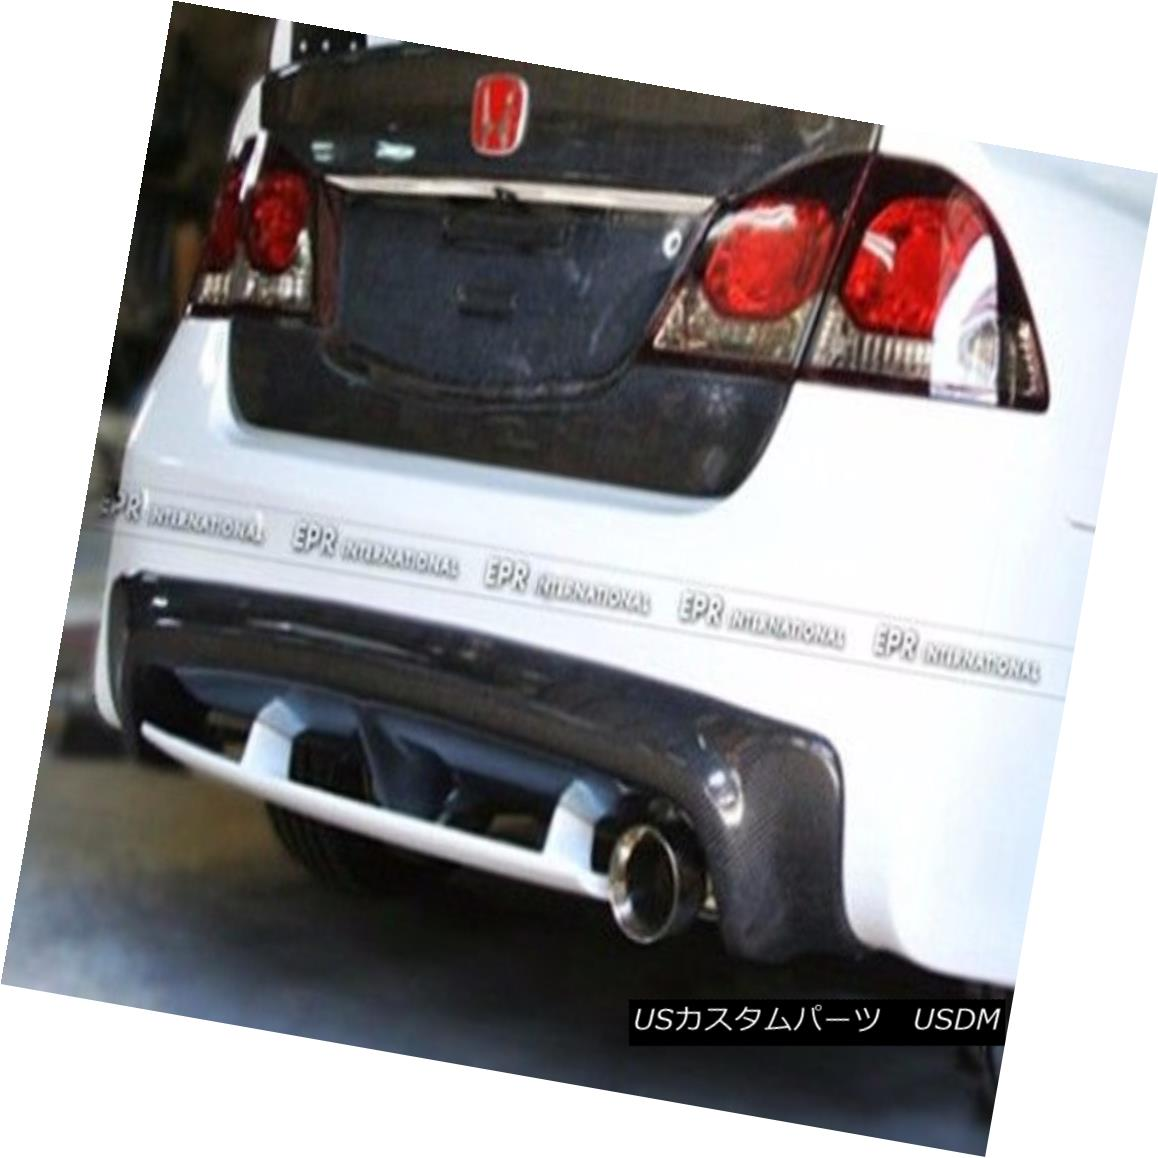 エアロパーツ Rear Bumper Diffuser Rear Lip Splitter For Honda Civic FD2 Mugenn Carbon Fiber Honda Civic FD2 Mugenカーボンファイバー用リヤバンパーディフューザリアリップスプリッター